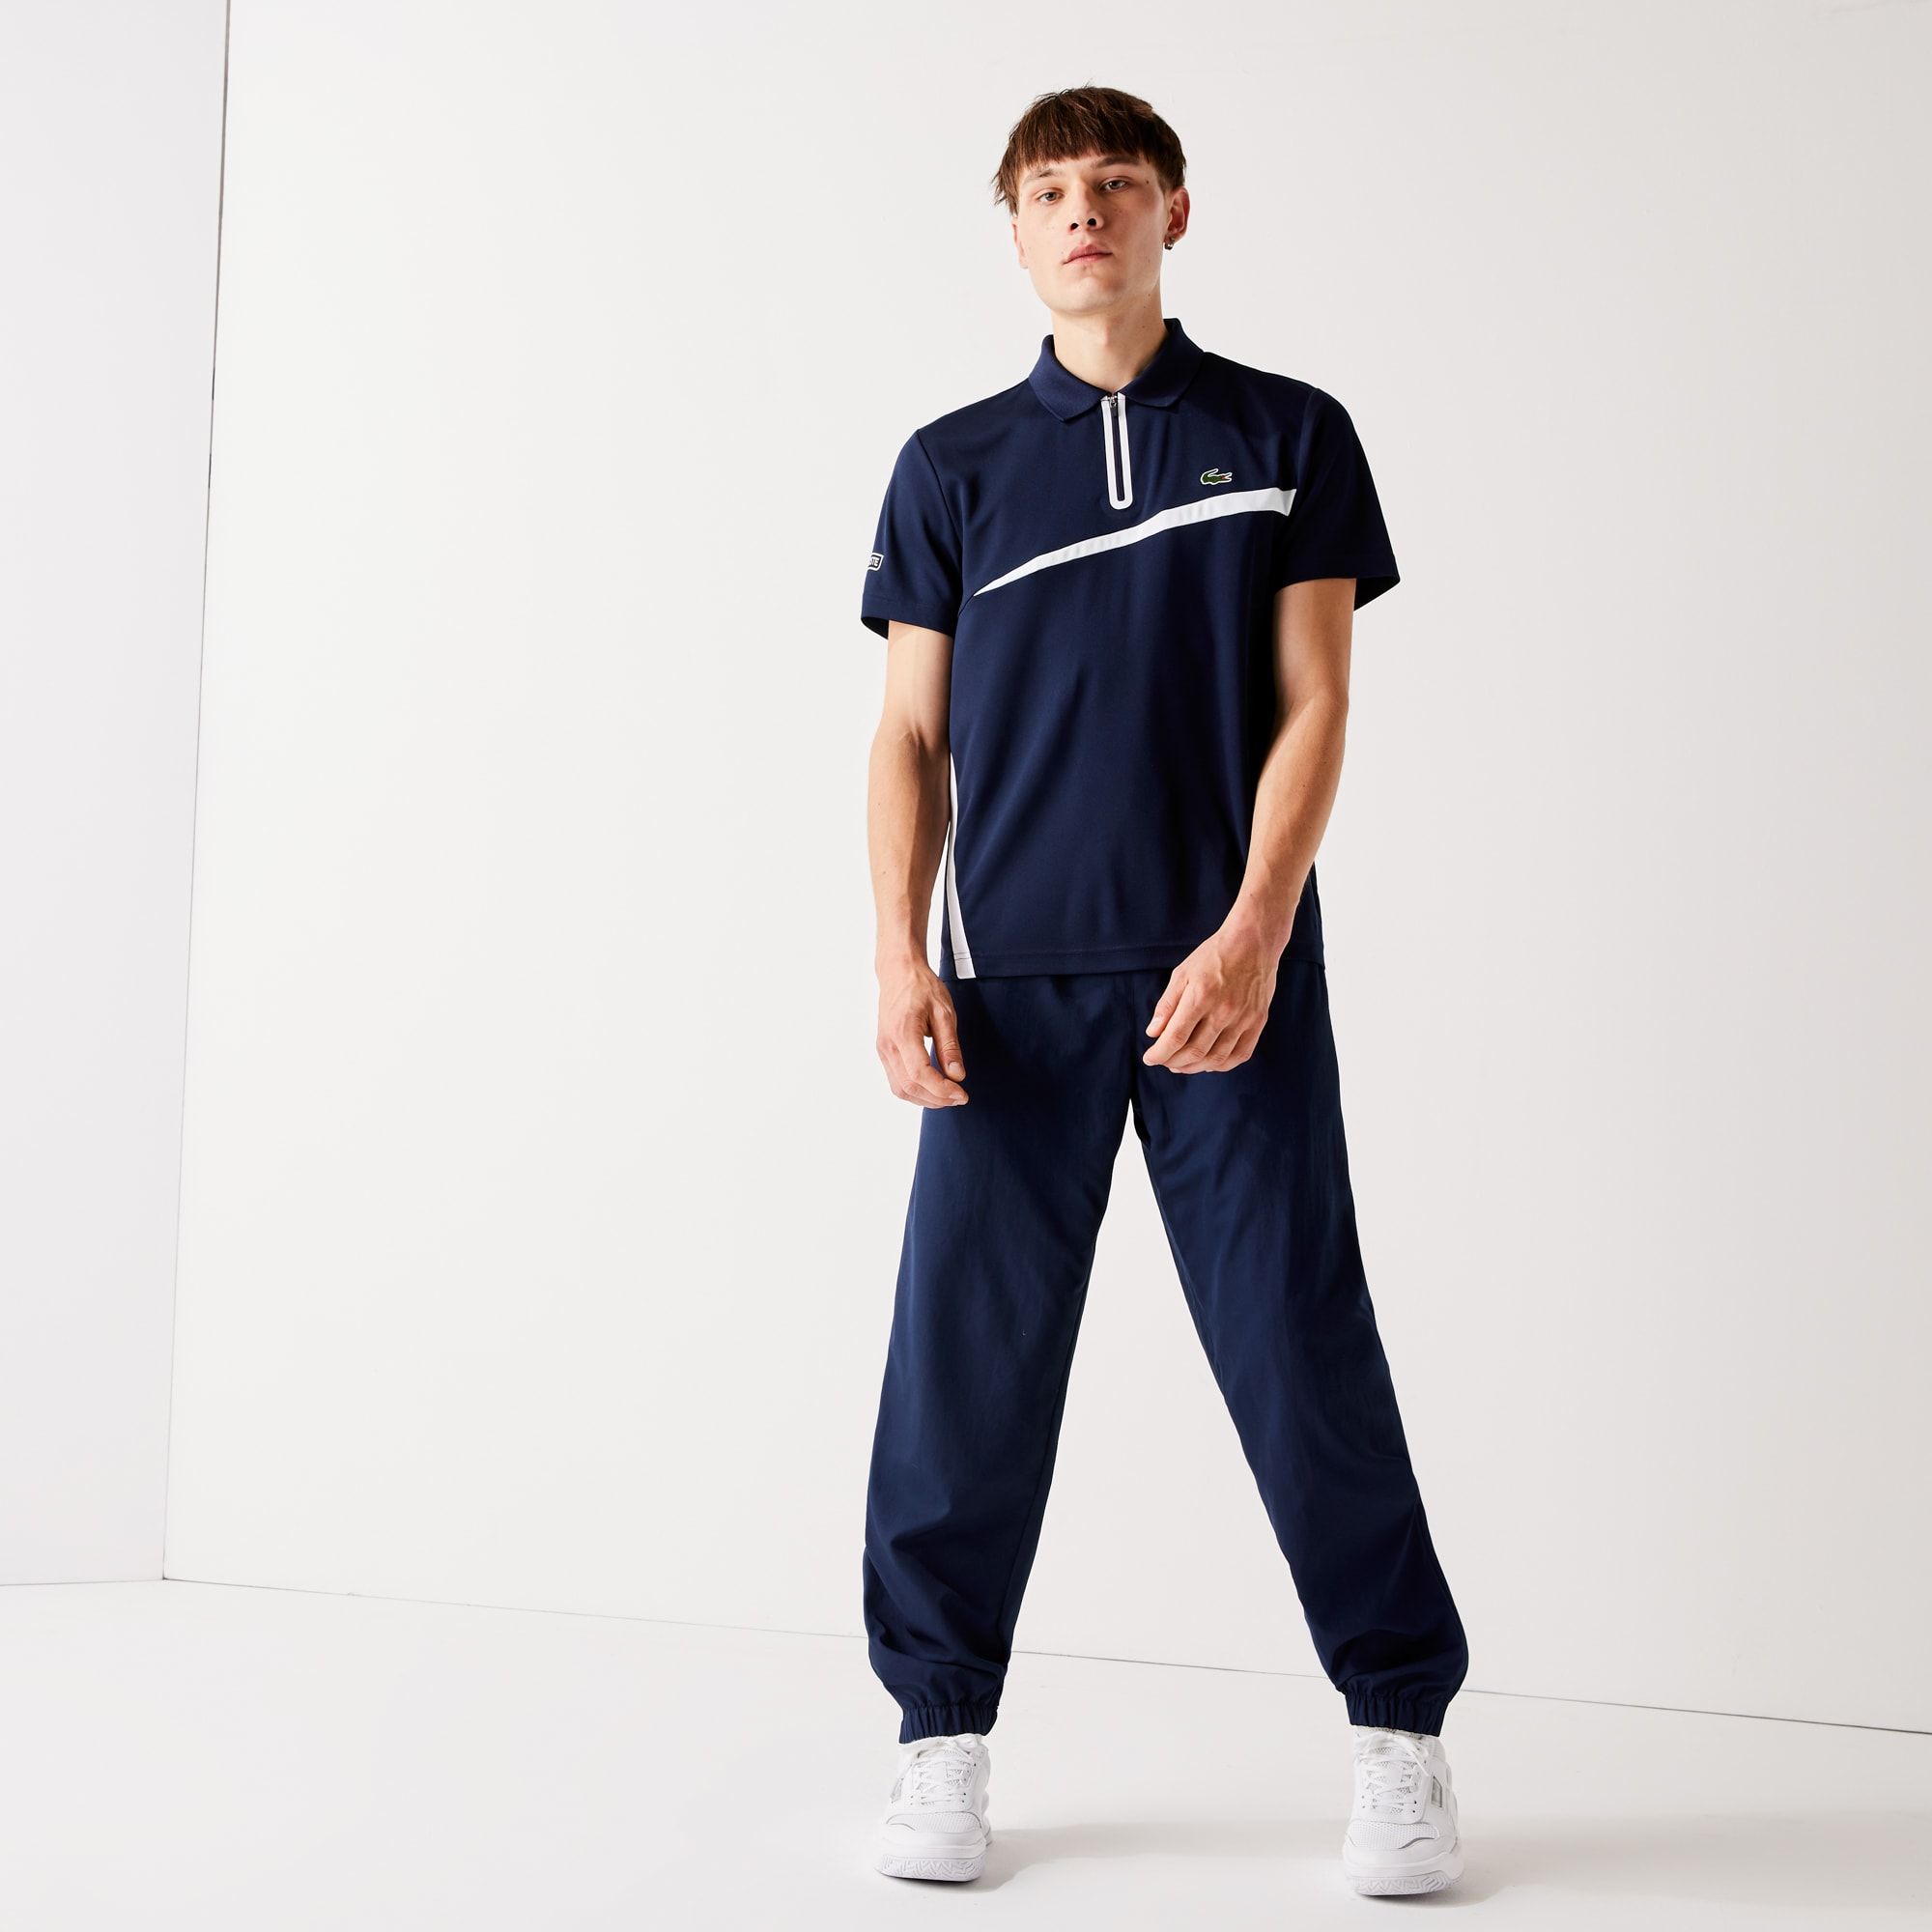 Pantalon de survêtement Tennis Lacoste SPORT  diamante uni